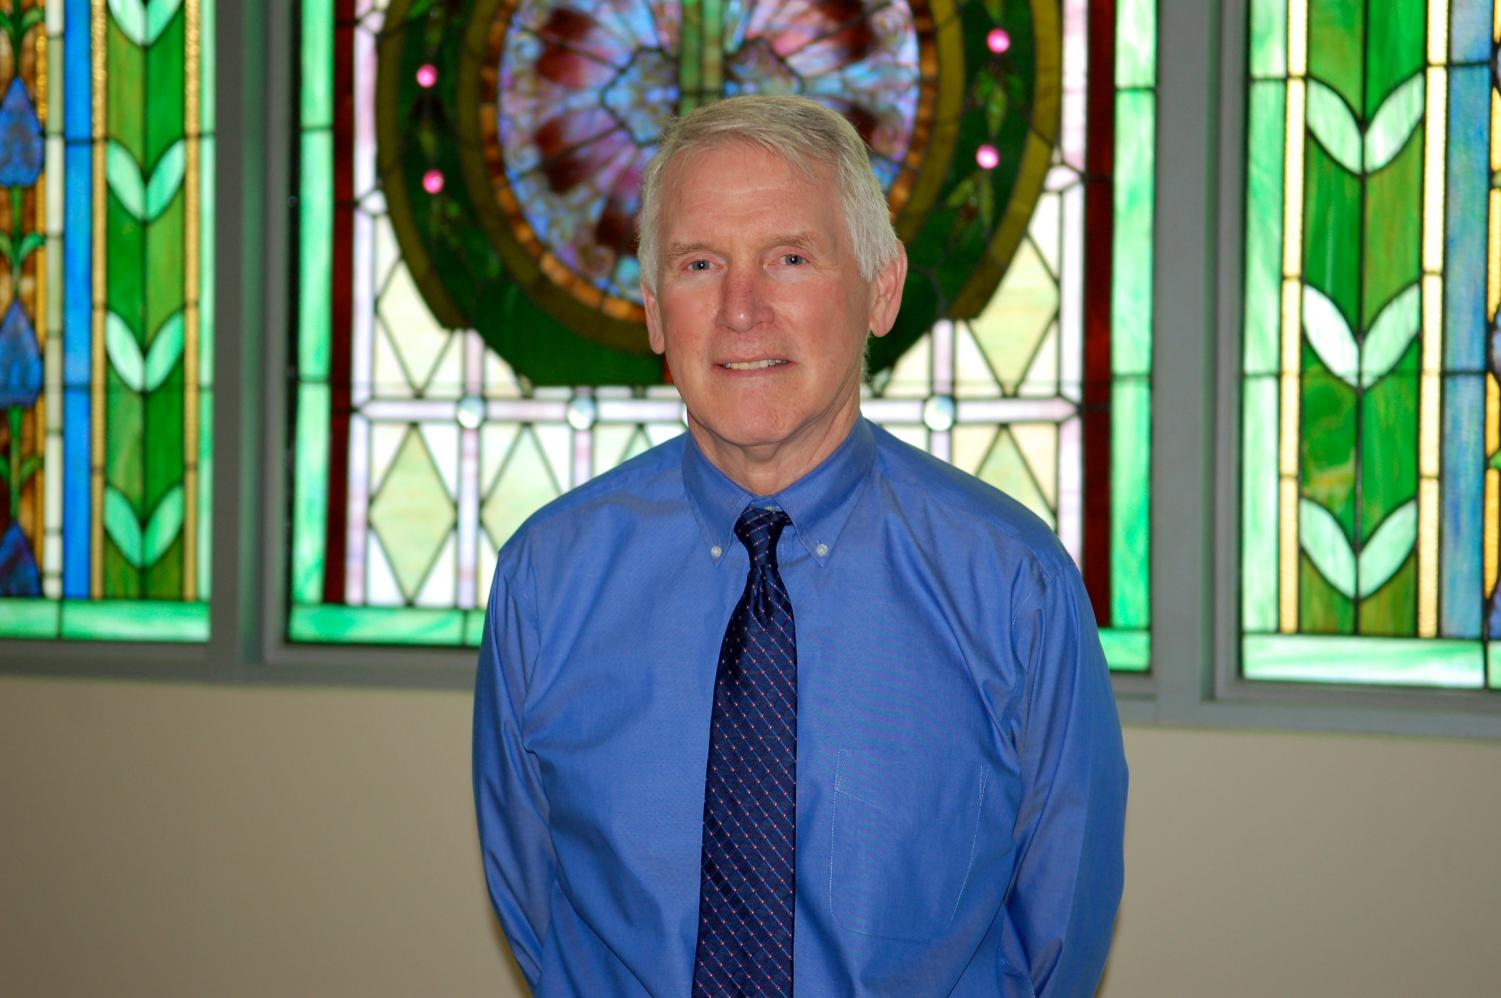 Mr. Hughes reflects on his life of service